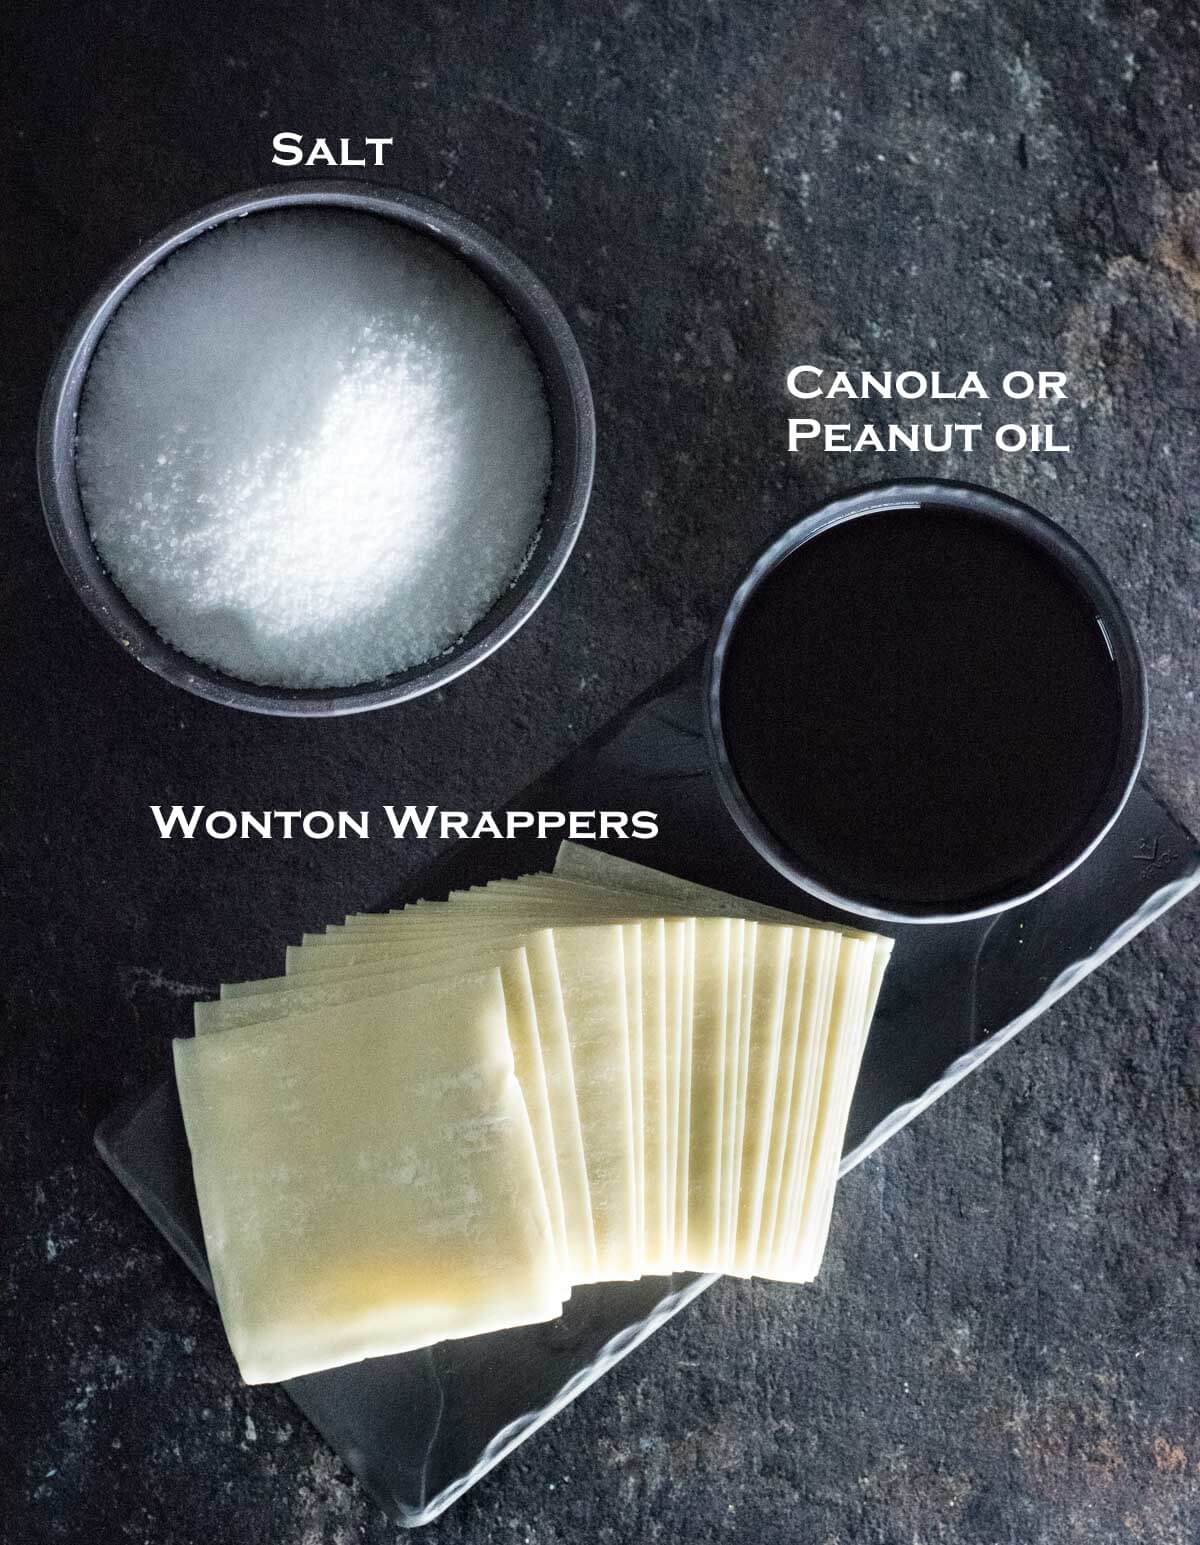 Wonton wrappers, frying oil, and salt in separate dishes.